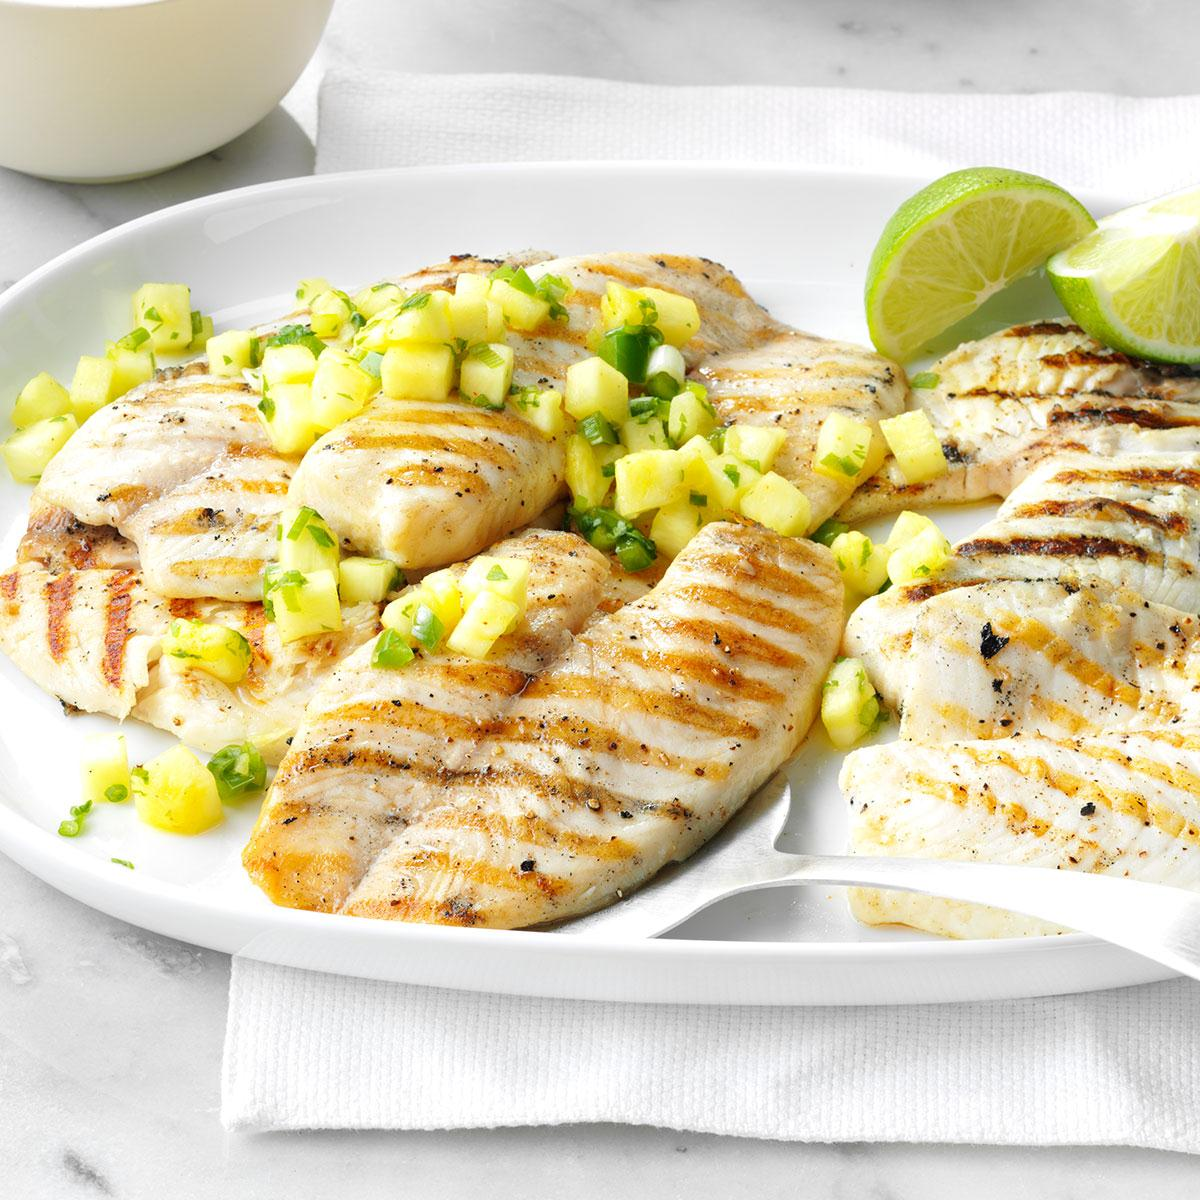 Grilled tilapia with pineapple salsa recipe taste of home for Fish tilapia recipe